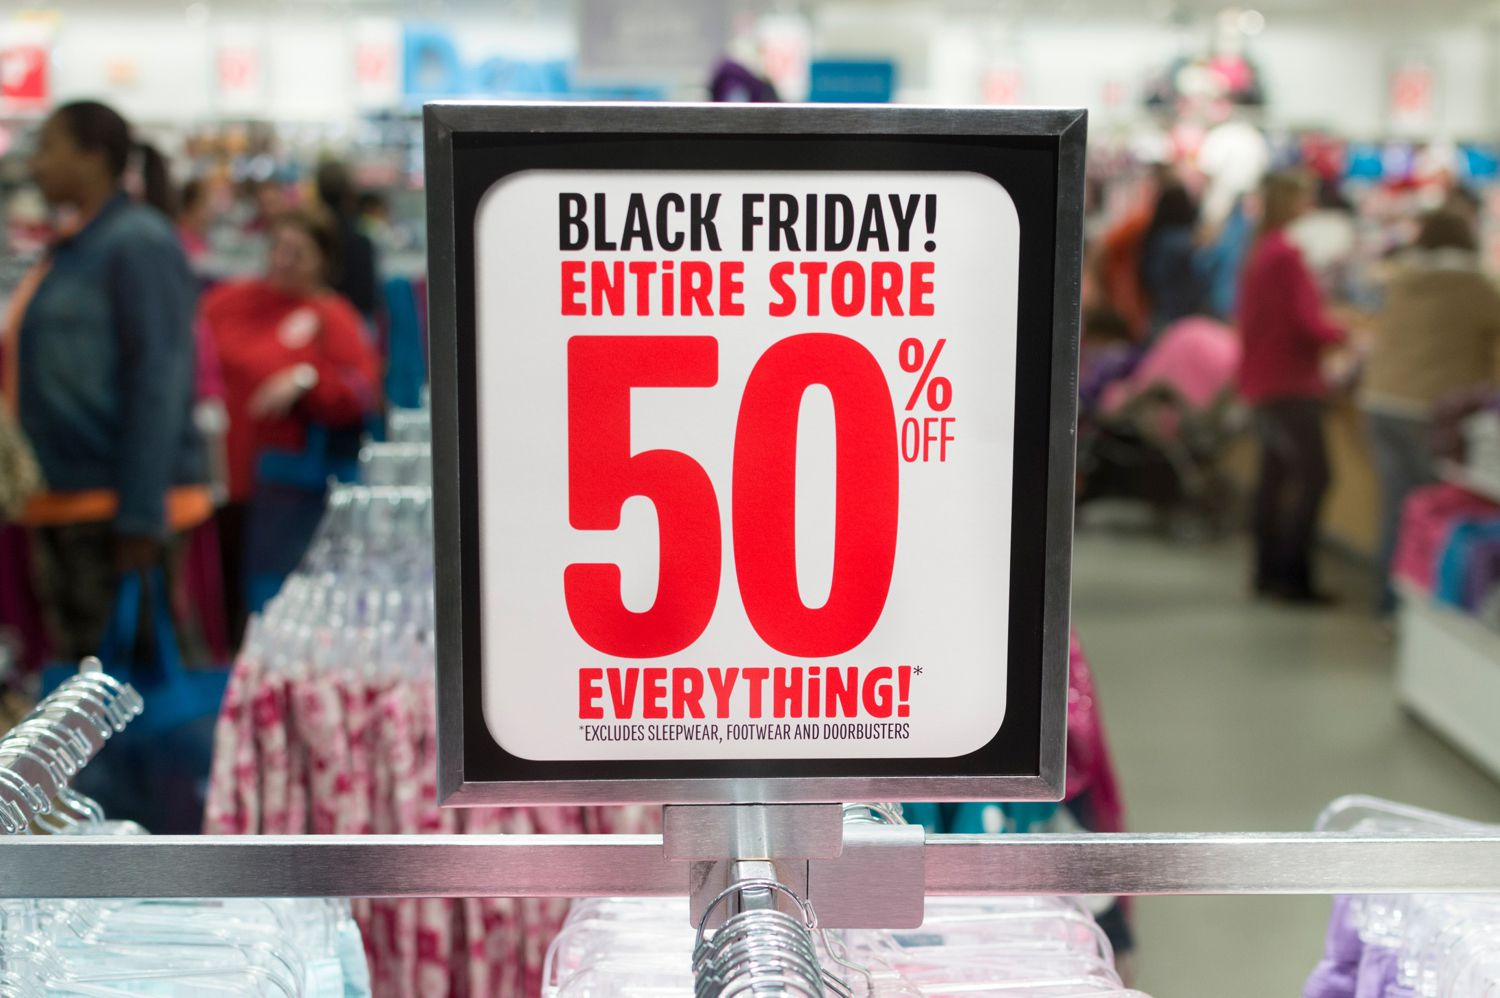 Get the Best Black Friday Deals With These 10 Tips